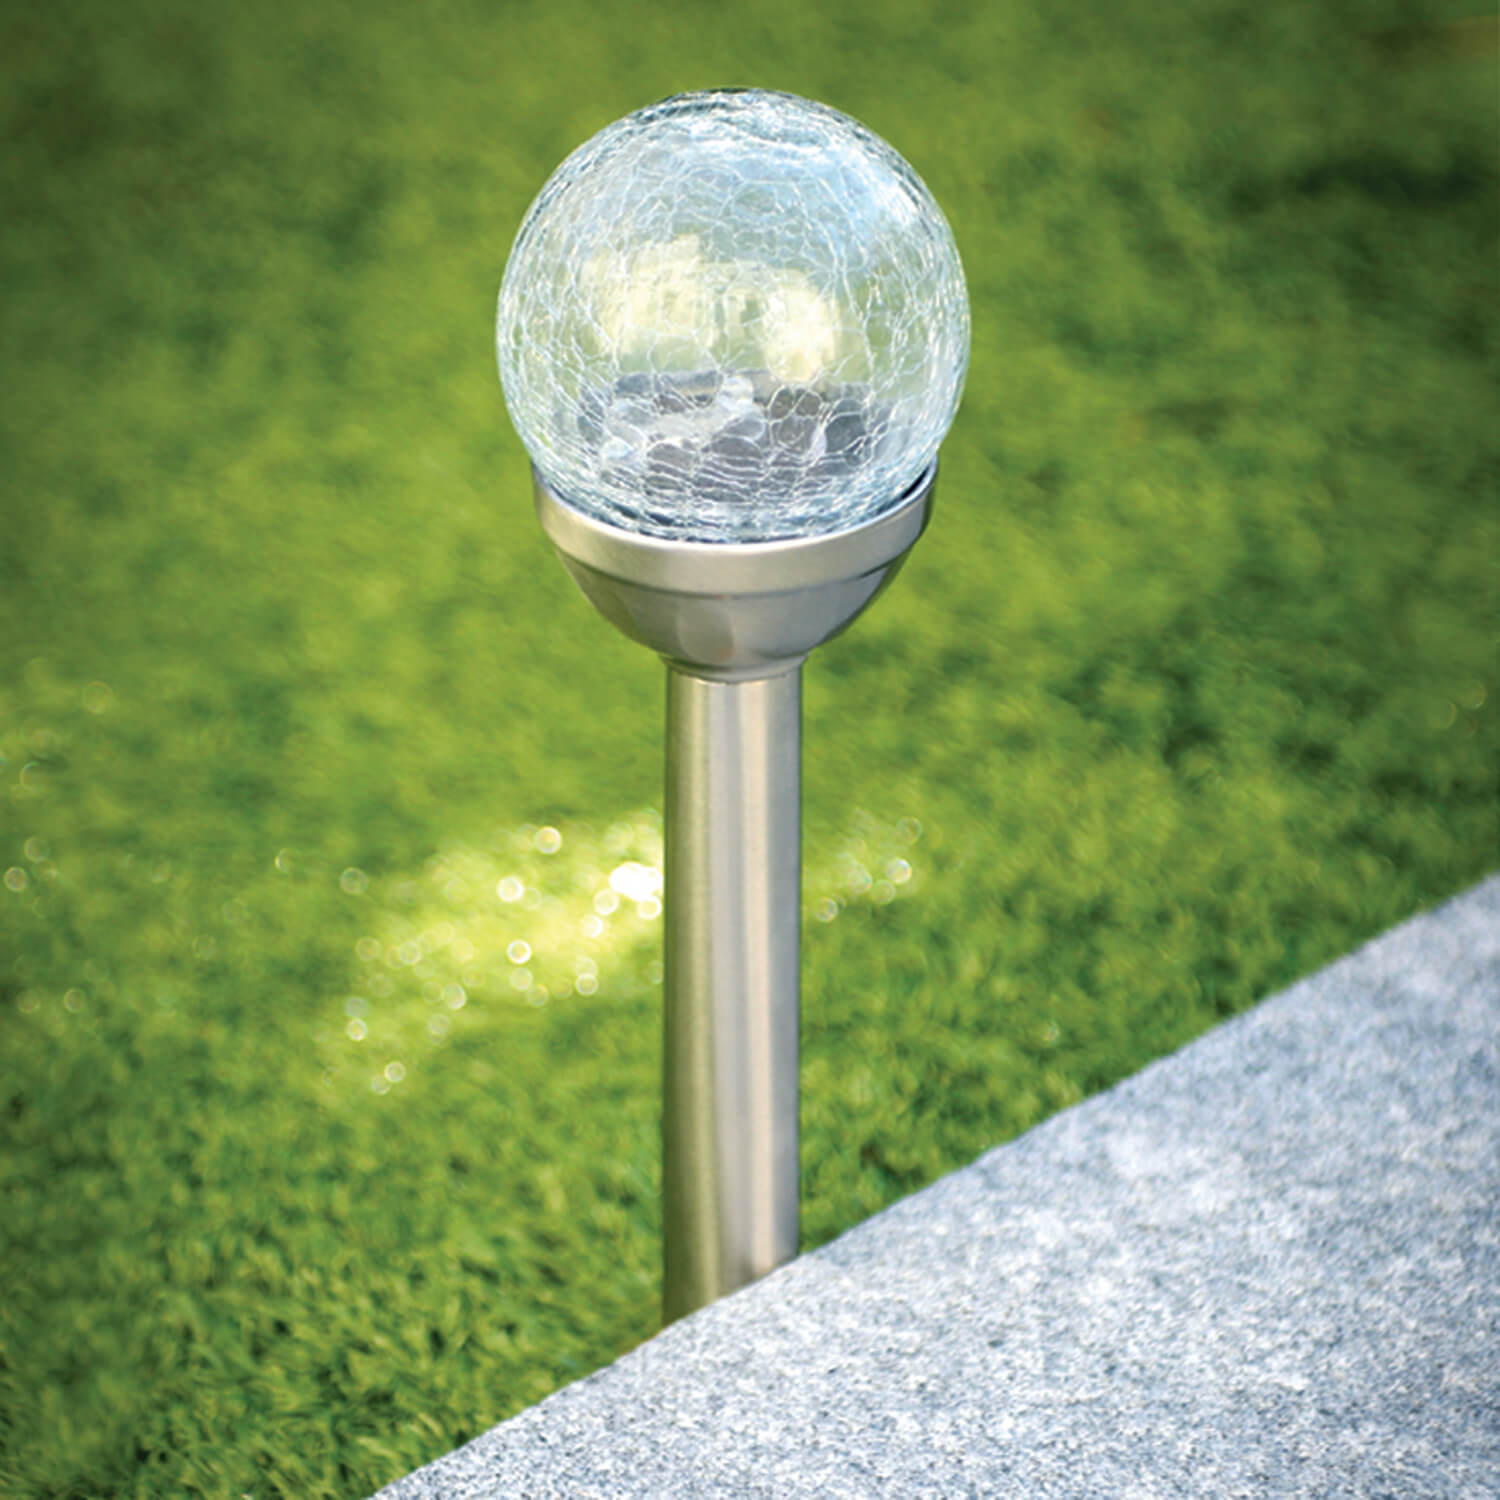 Solarlicht Garten Crackle Ball Post Solar Light Home Store 43 More